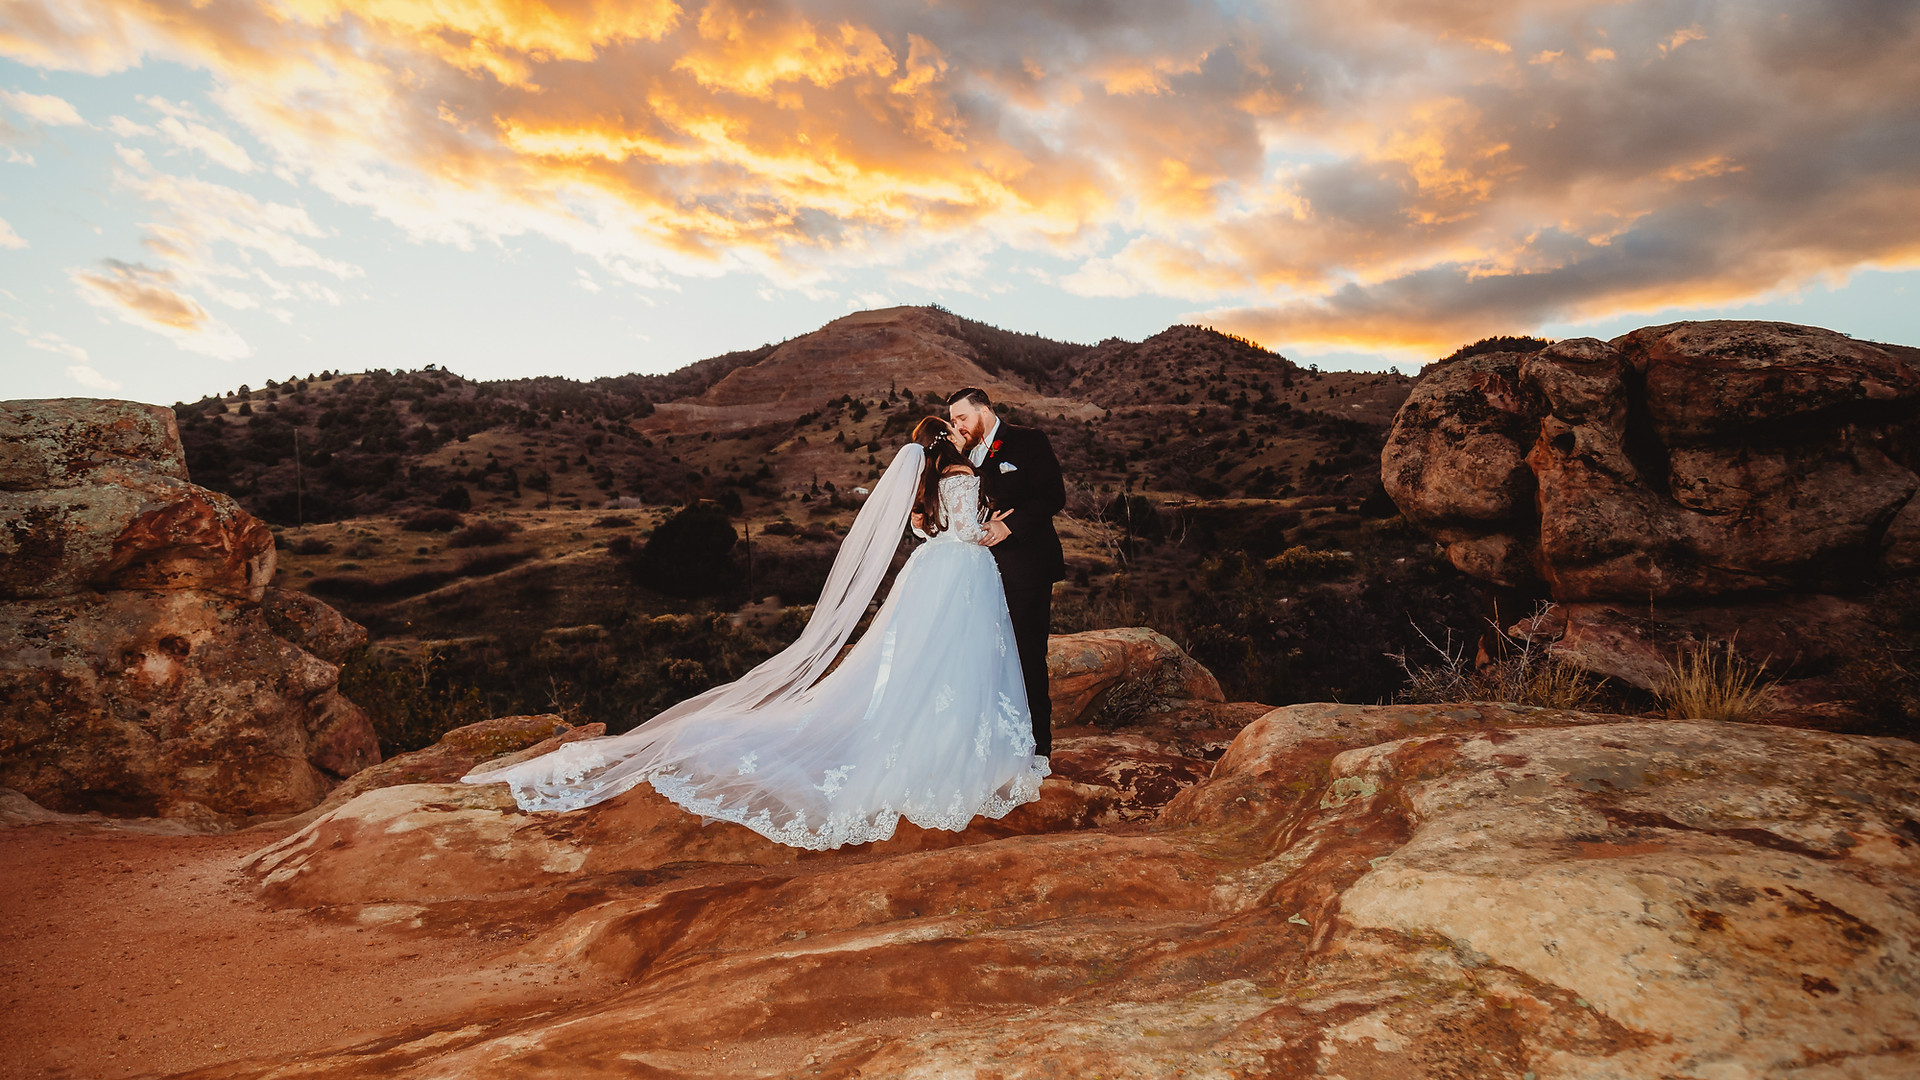 Colorado Wedding Photo + Video - LAB Pho